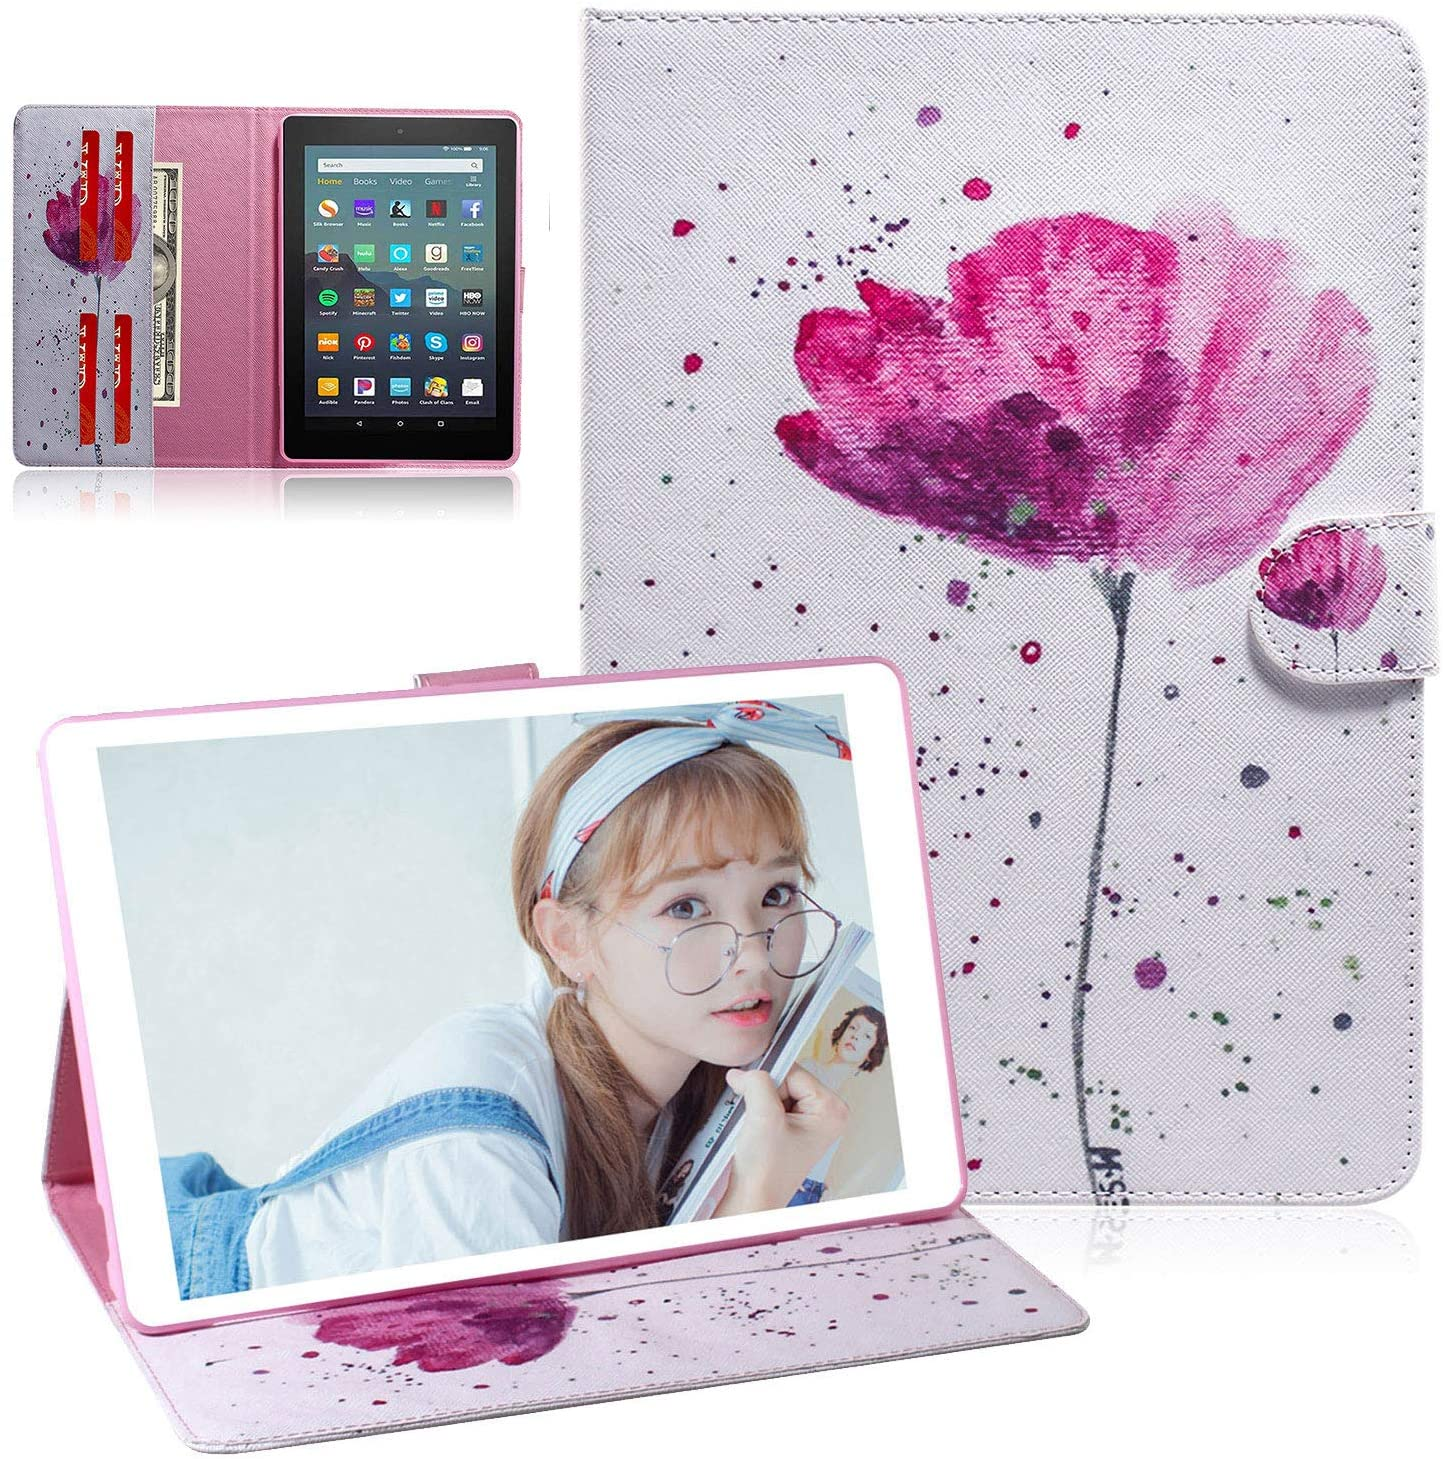 Case for DHgate Fire 7 inch case 2019/2017 Release -UGOcase Premium PU Leather Folding Folio Stand Wallet Case with Cards Holder for DHgate Kindle Fire 7 2019/2017, 9th/ 7th Generation, Orchid